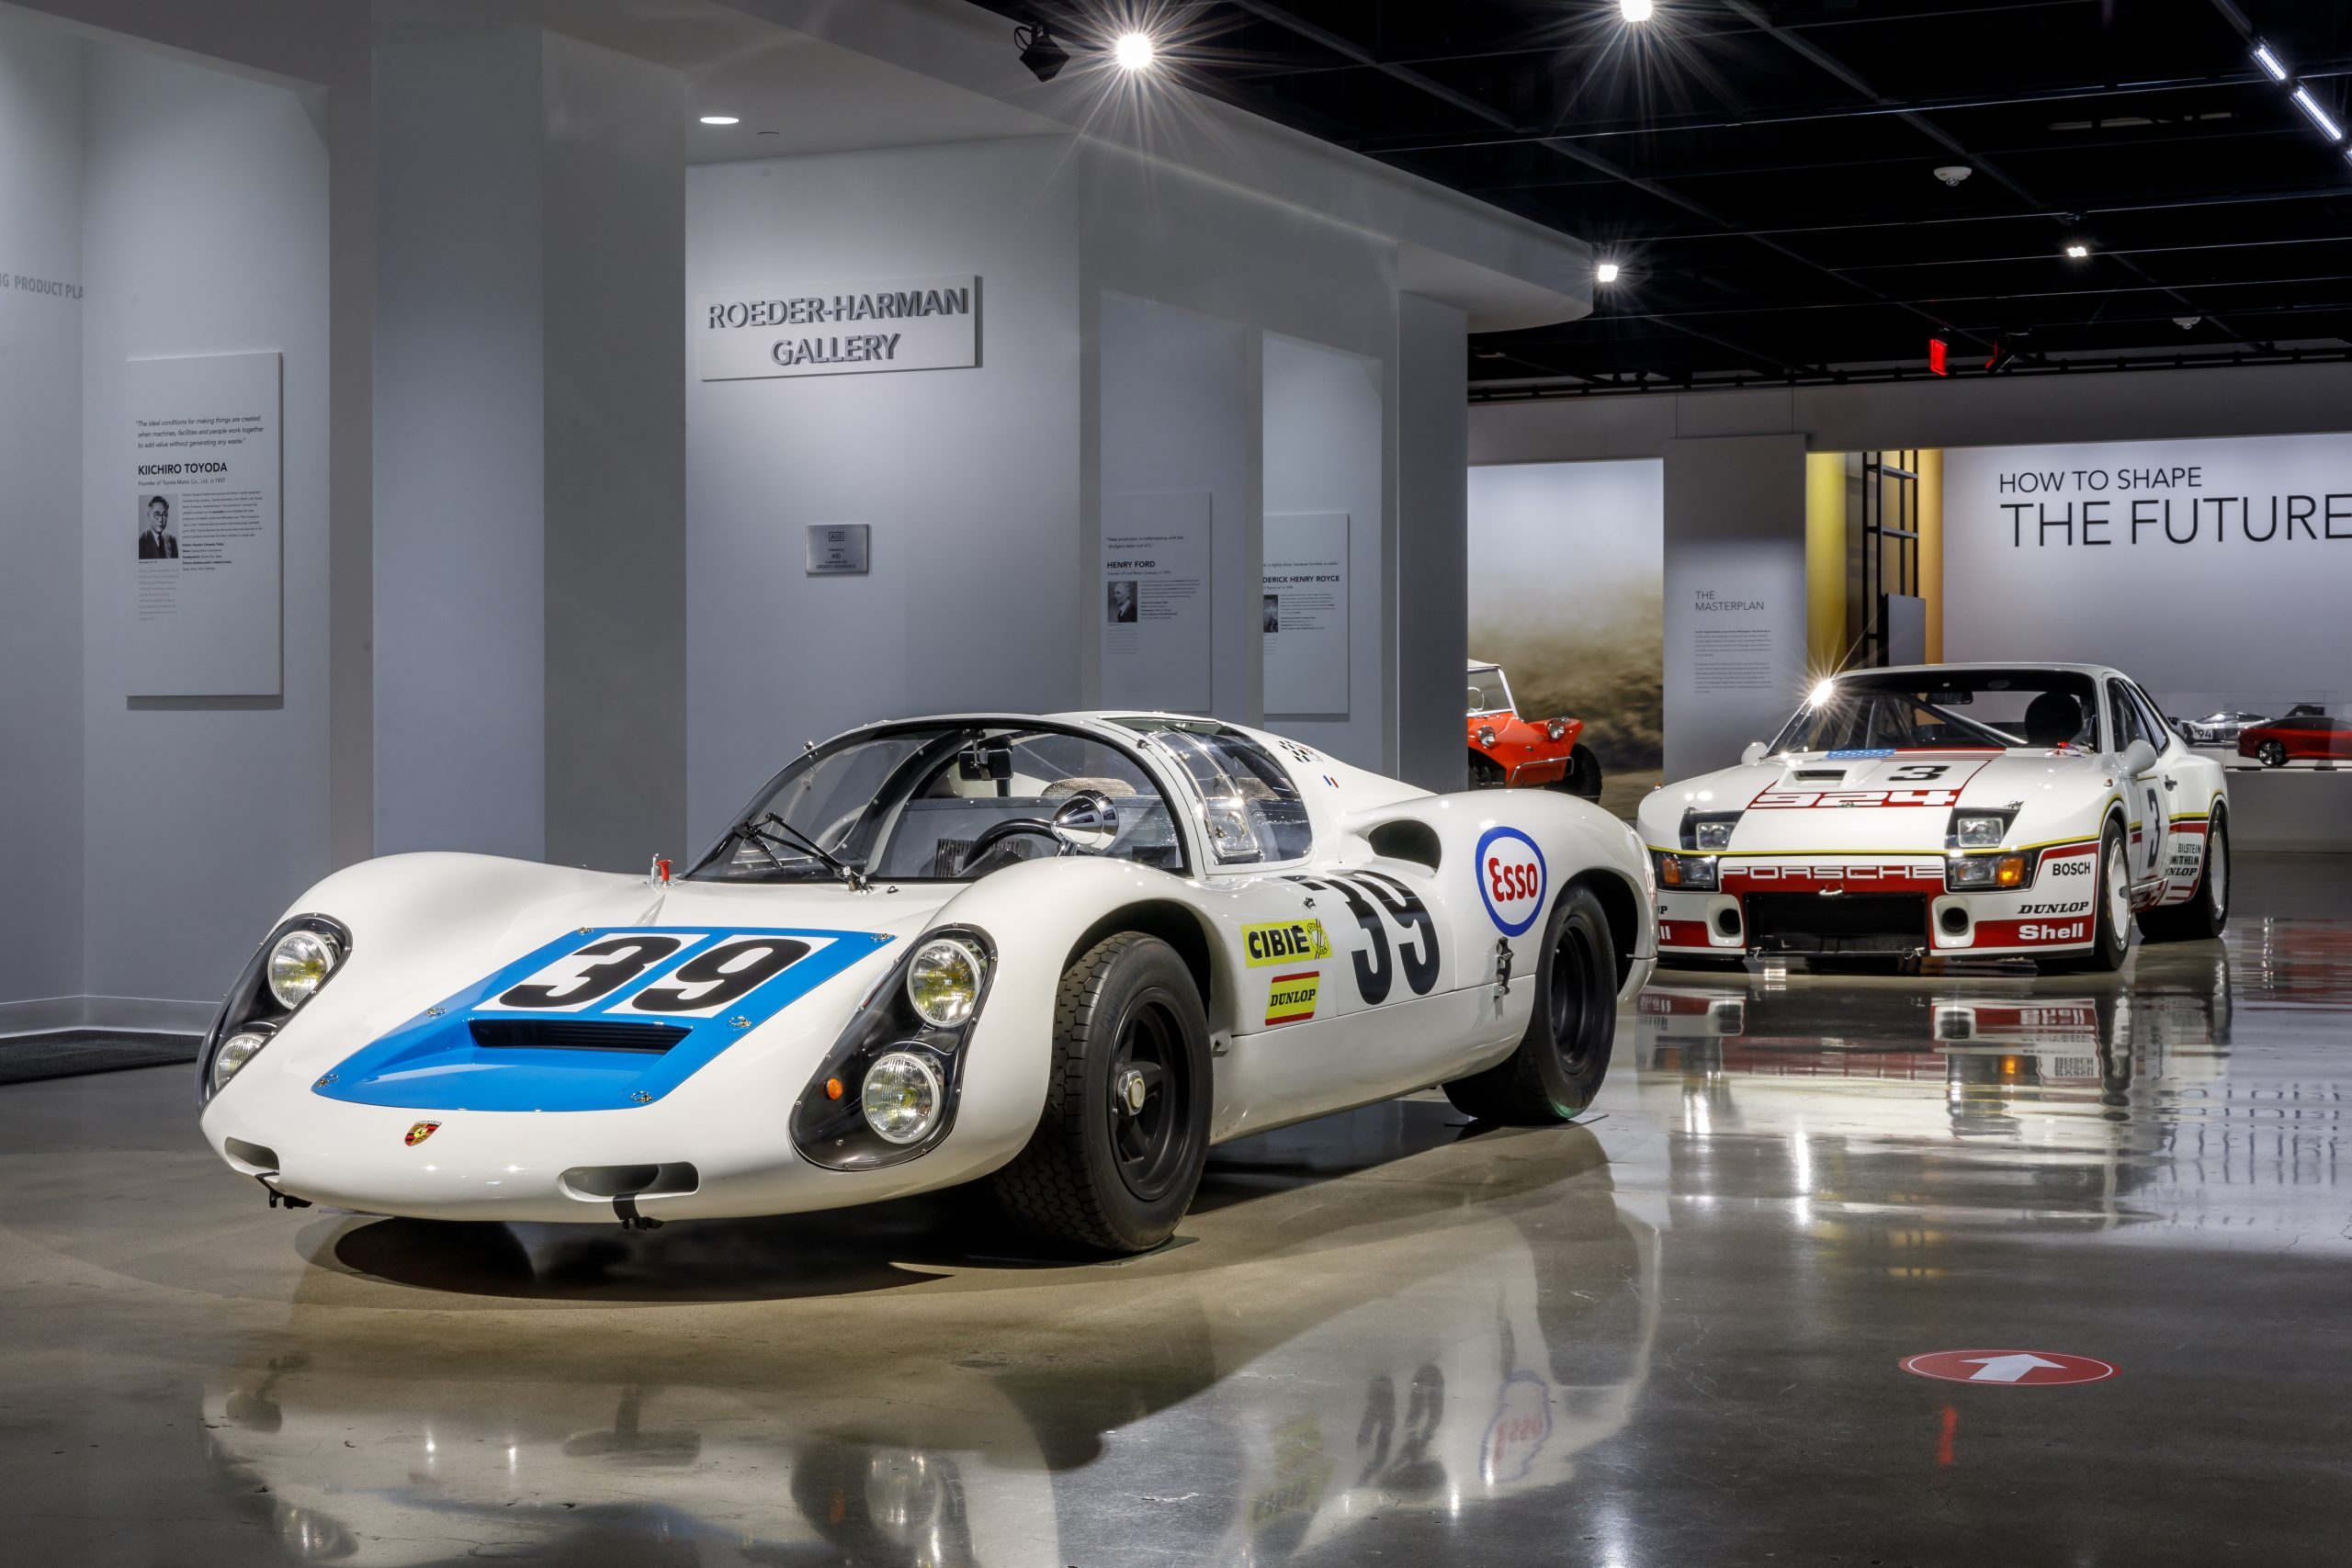 These 5 veteran racing Porsches celebrate Stuttgart's racing legacy